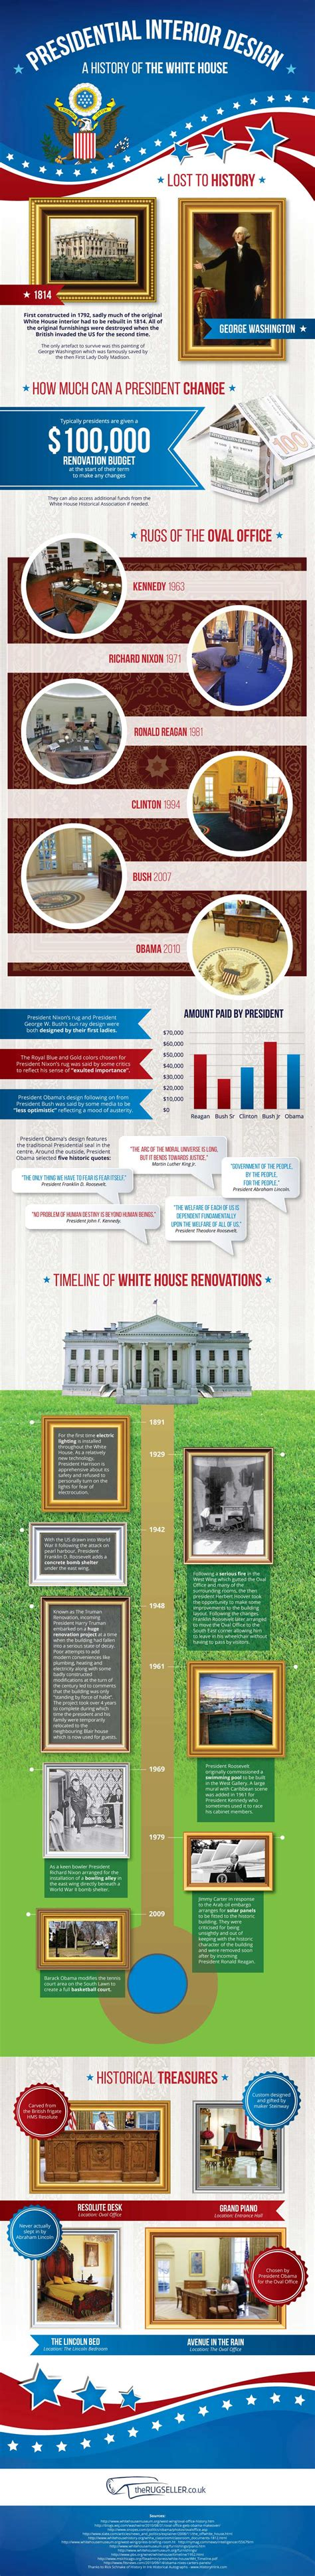 the white house interior design an illustrated history of the white house s interior design curbed dc